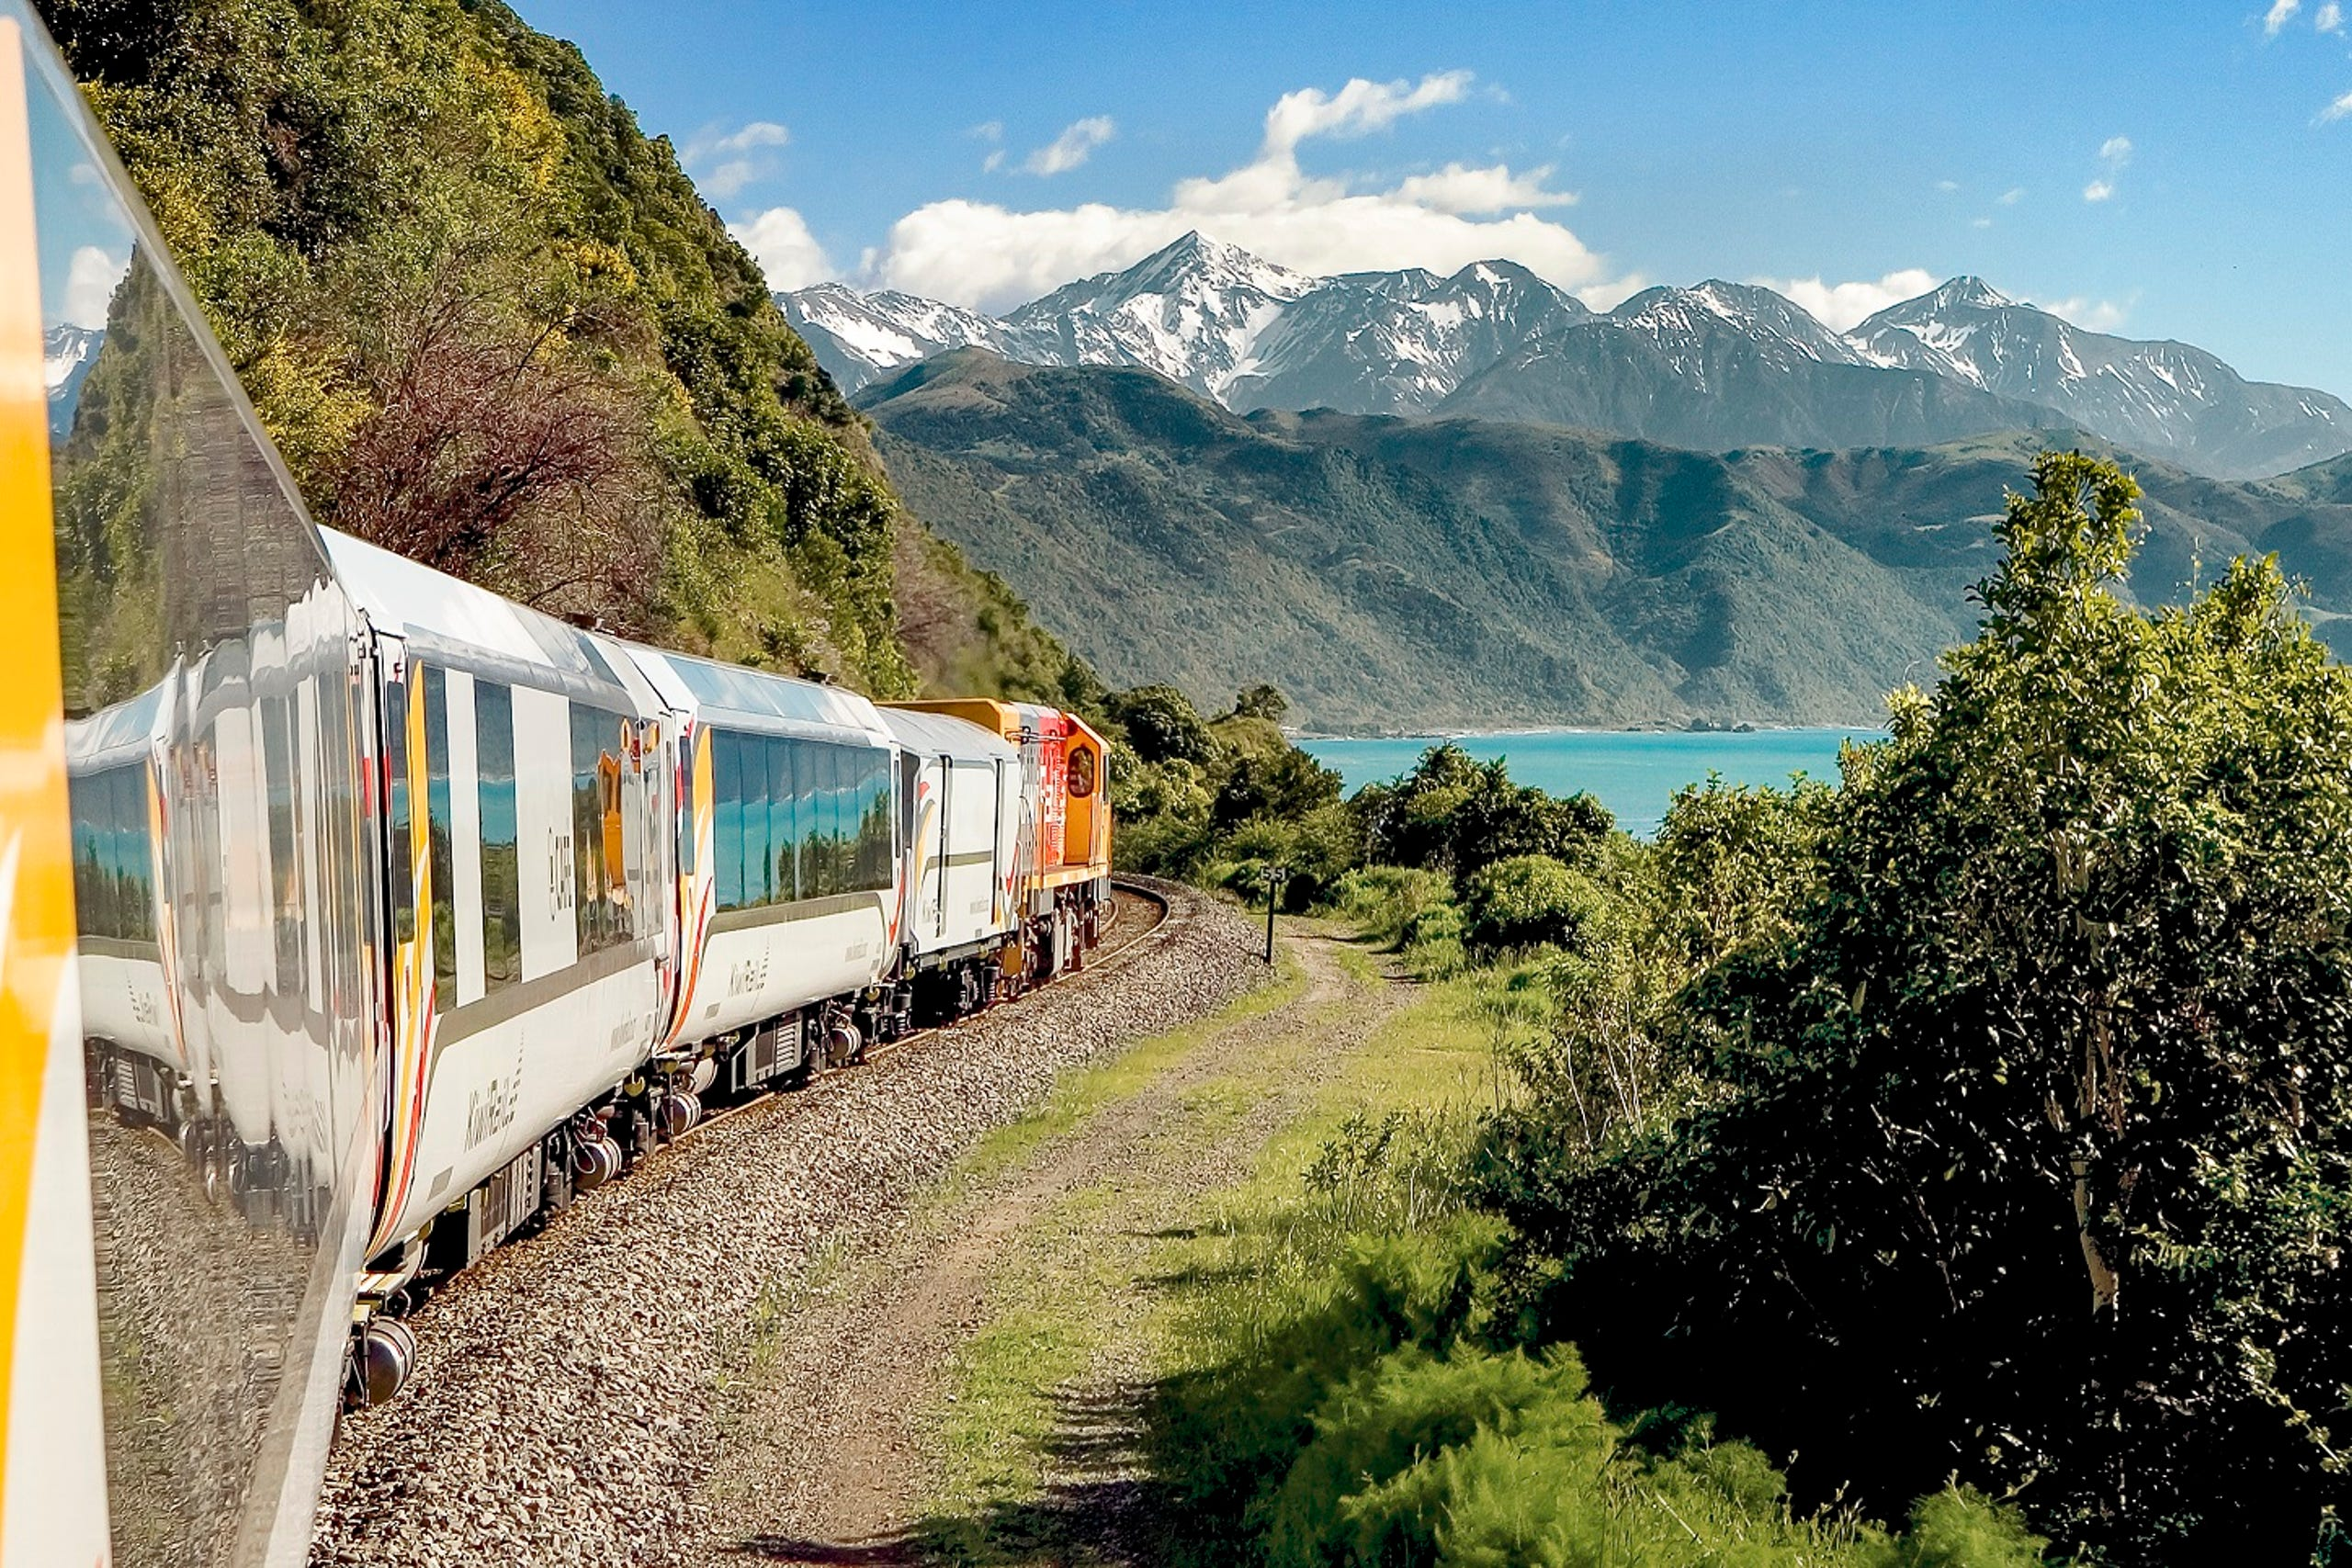 Scenic train rides around the world: Canada, Europe, Africa and beyond